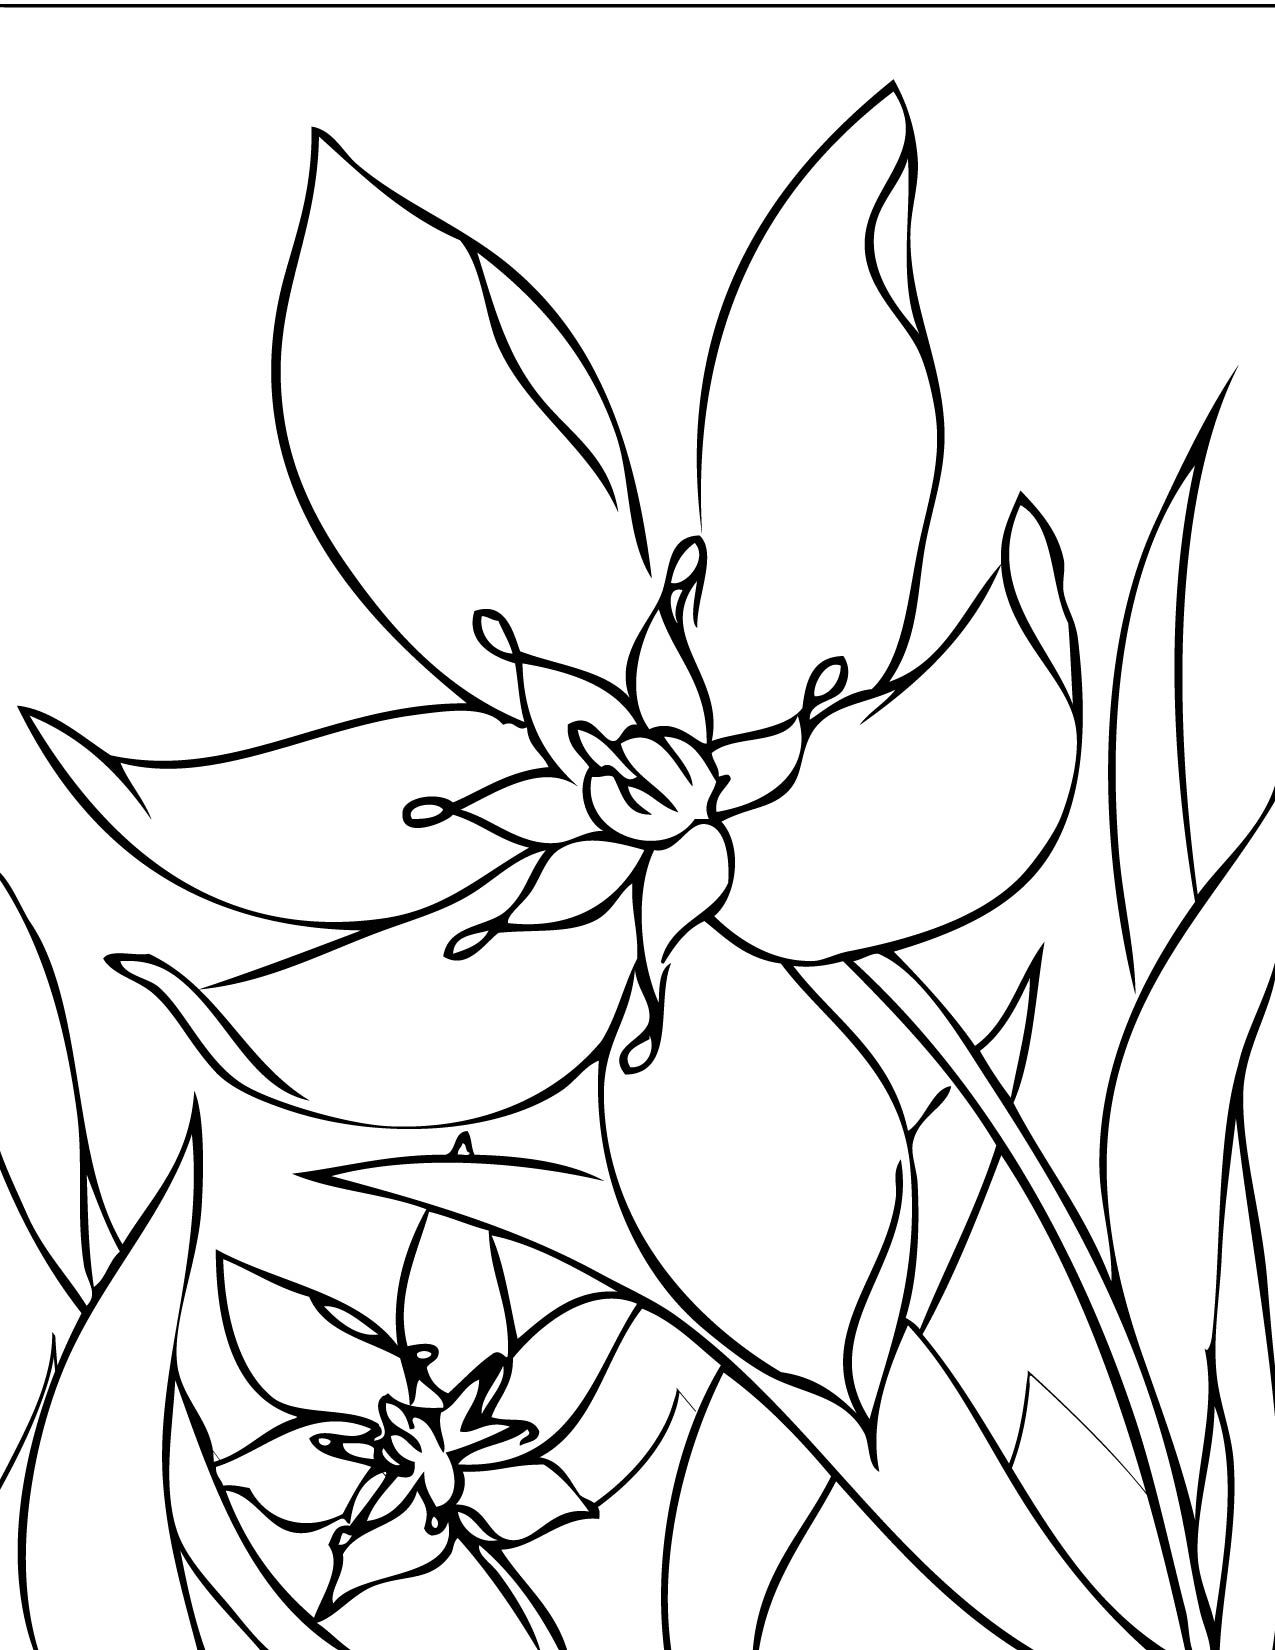 Printable coloring pages of spring - Flower Page Printable Coloring Sheets Print This Page Spring Flowers Coloring Pages Coloring